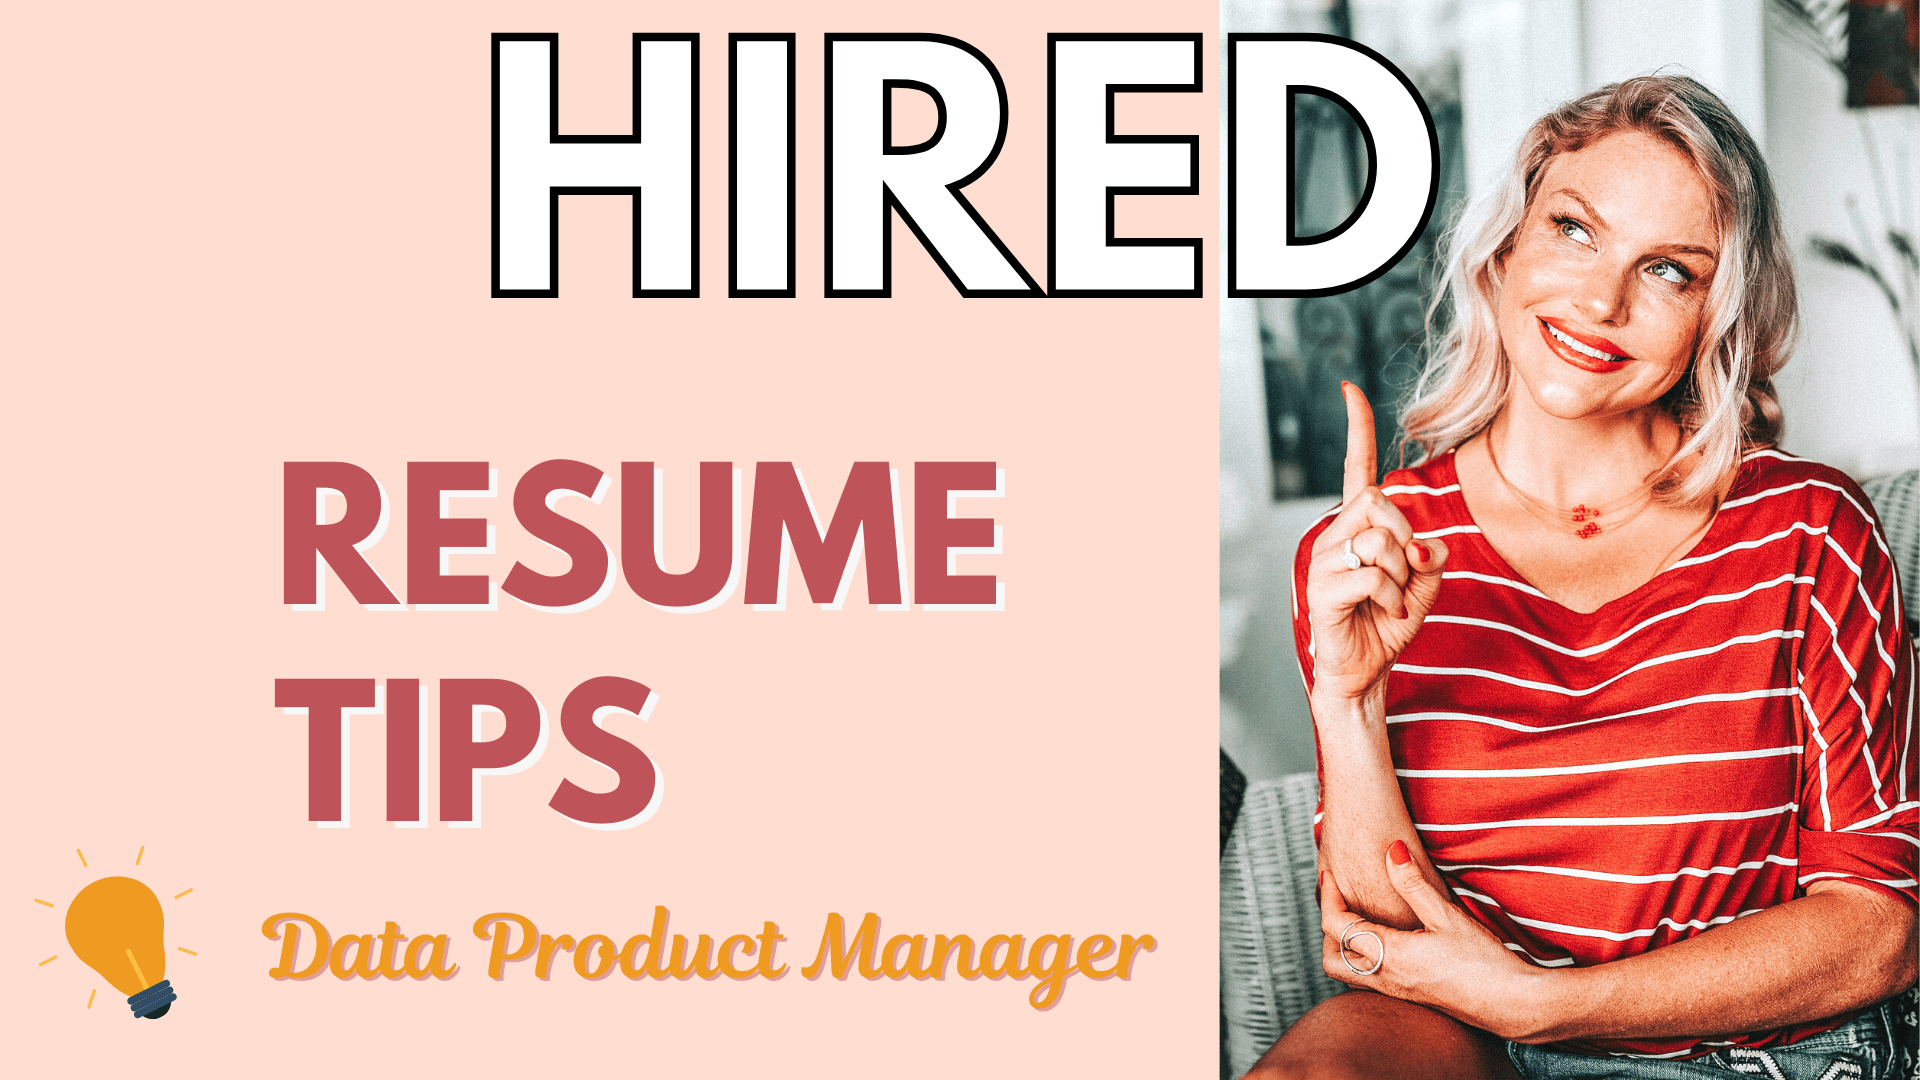 looking to become a data product manager? Get these resume tips stat!